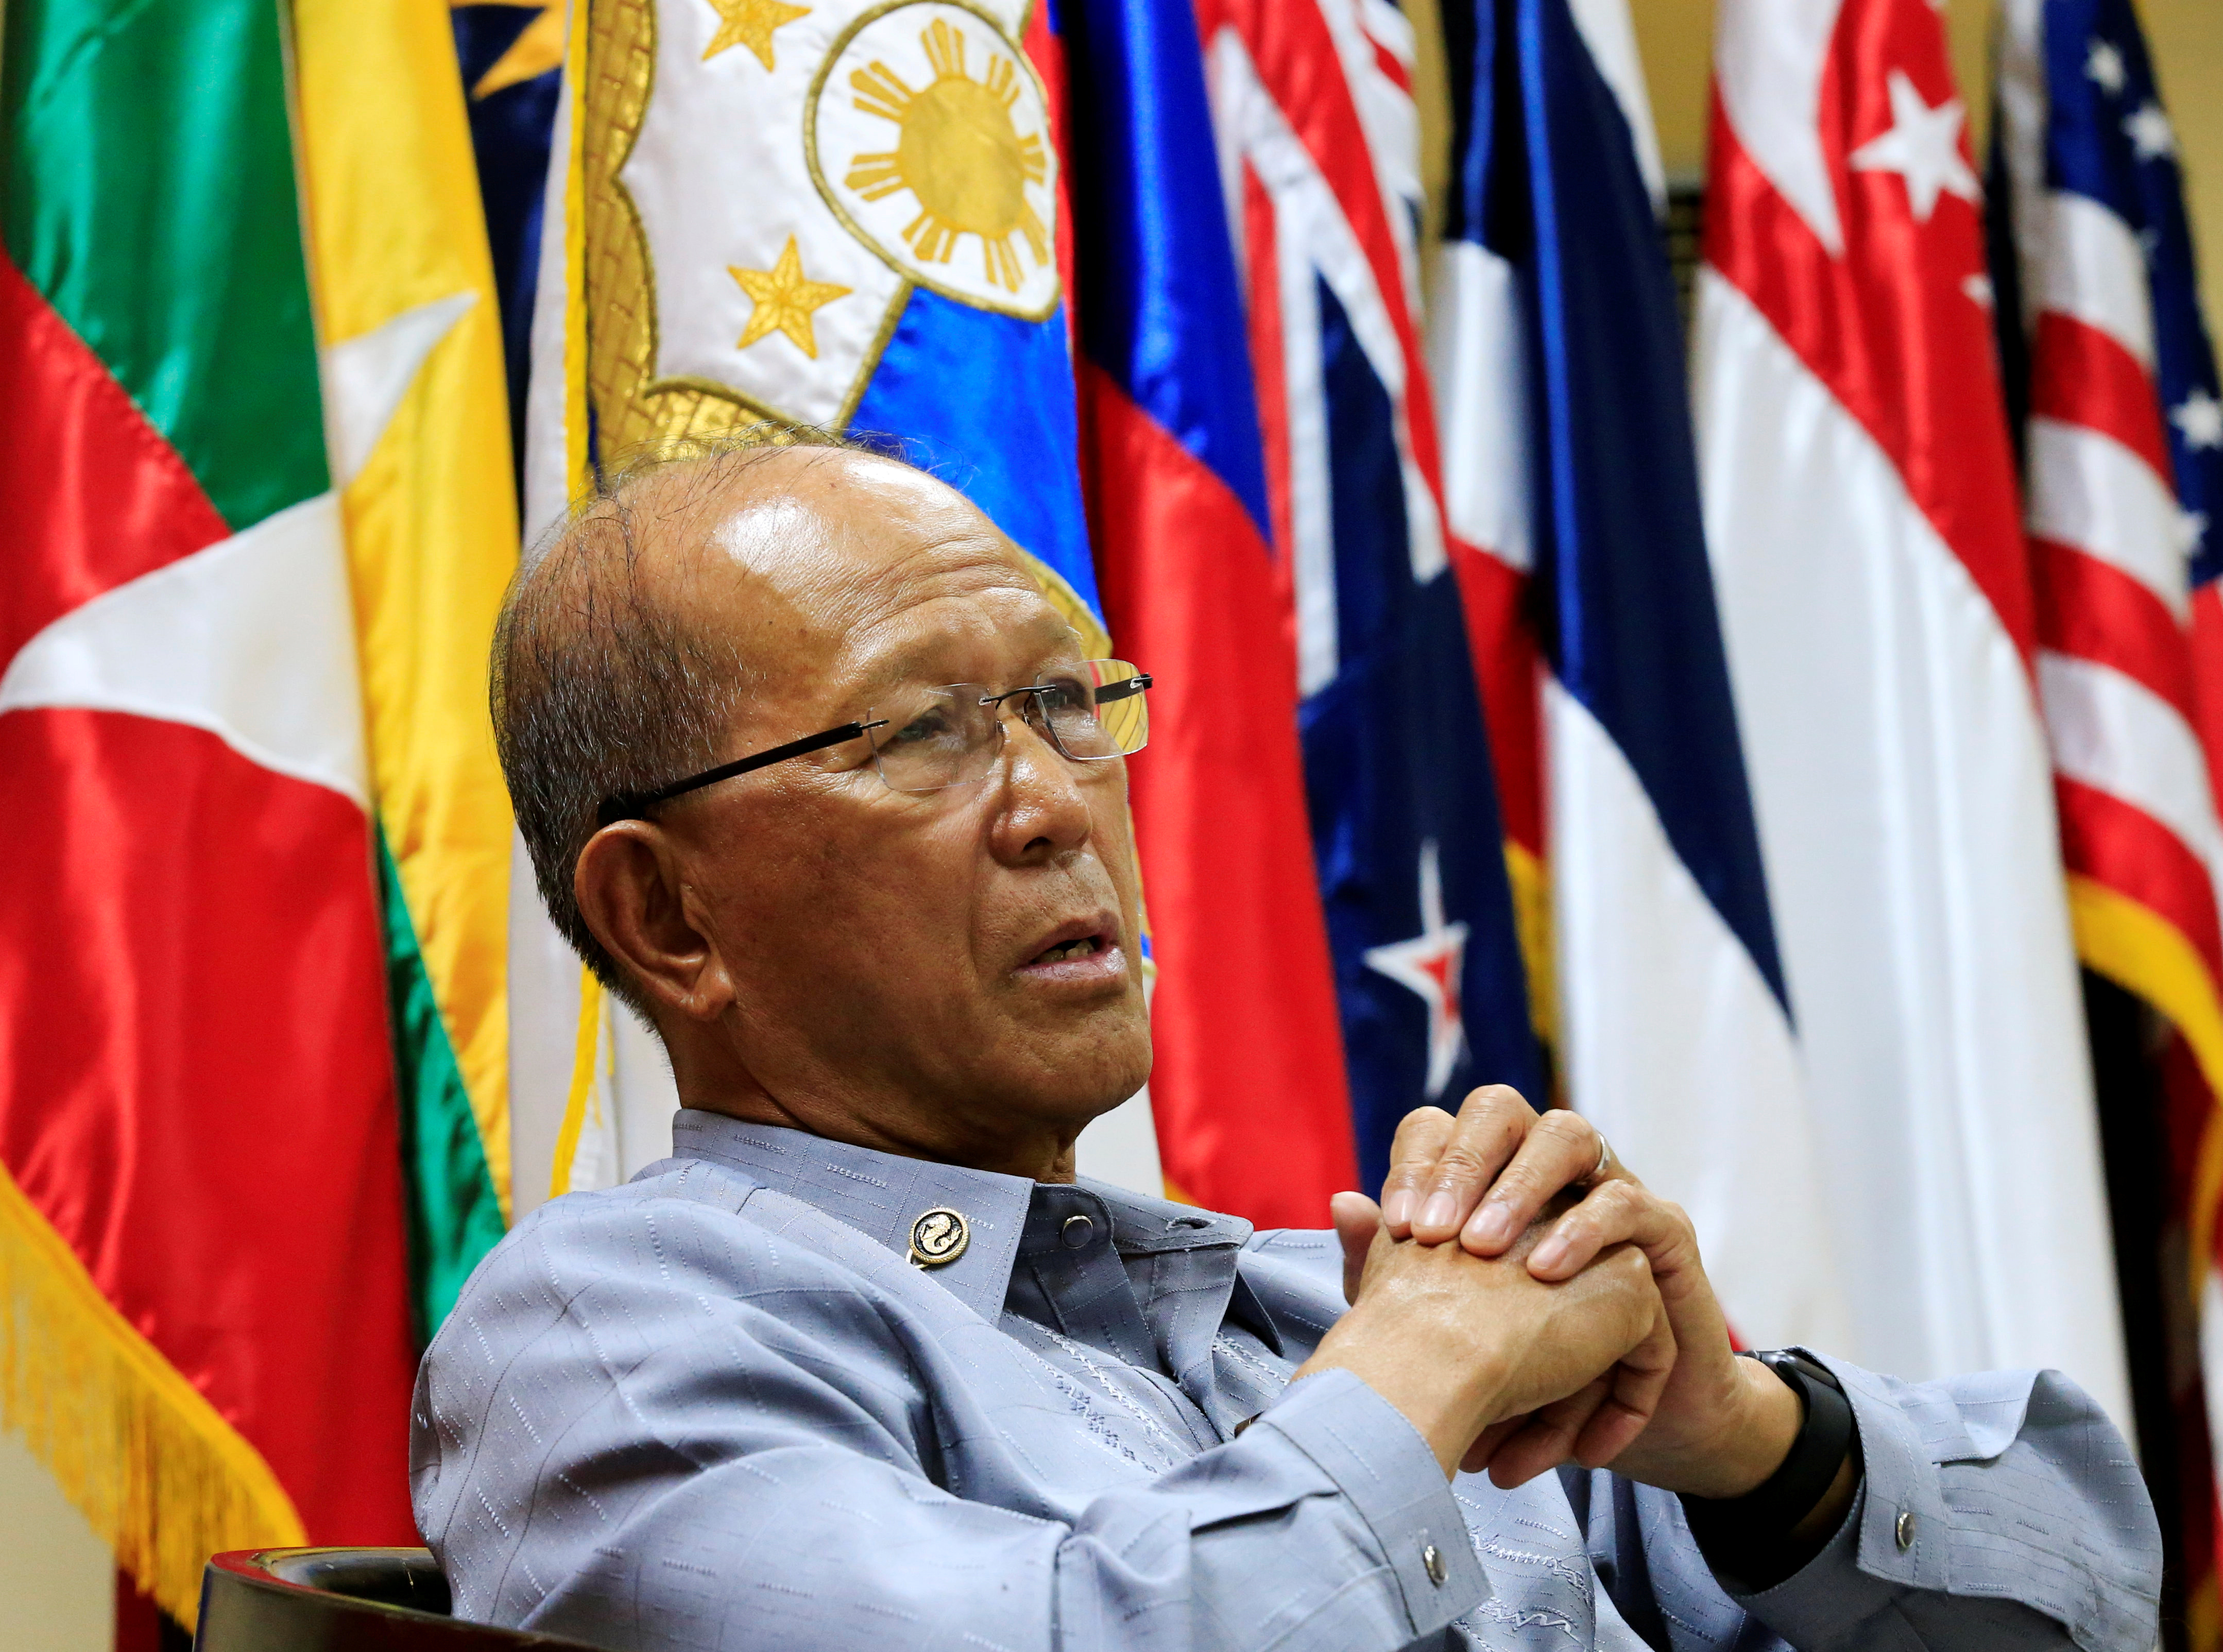 Philippine Defence Secretary Delfin Lorenzana answer questions during a Reuters interview at the military headquarters of Camp Aquinaldo in Quezon city, metro Manila, Philippines February 9, 2017. REUTERS/Romeo Ranoco/